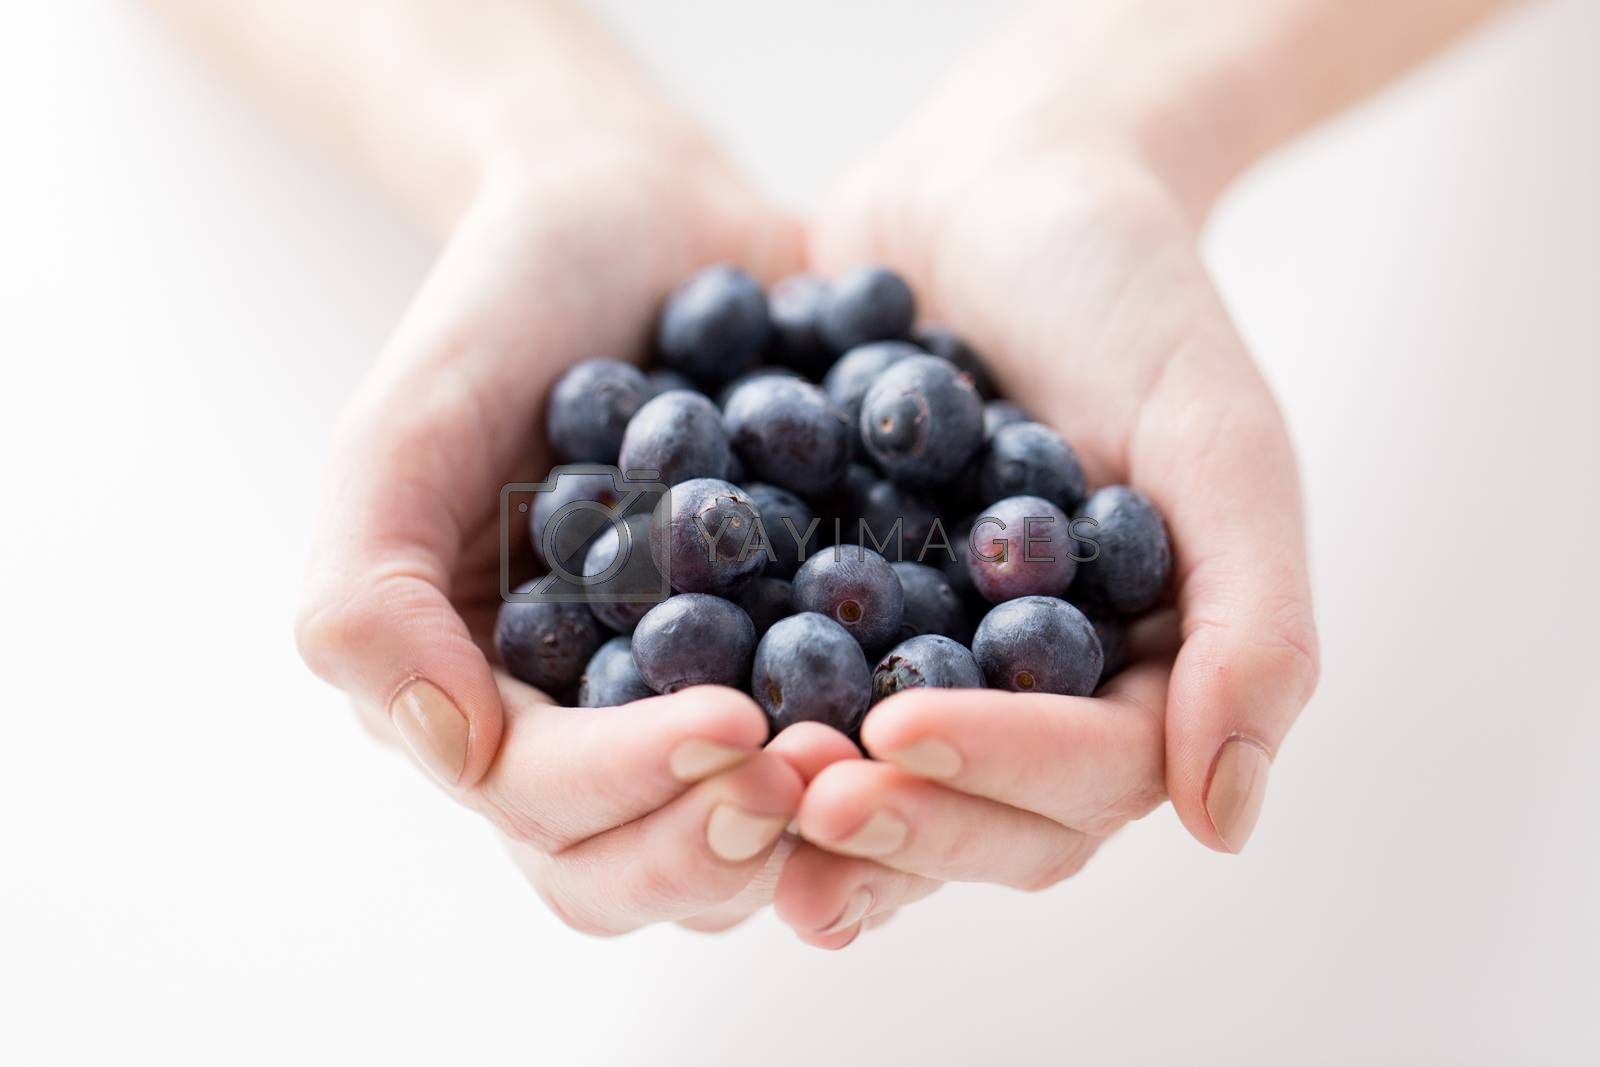 Royalty free image of close up of woman hands holding blueberries by dolgachov